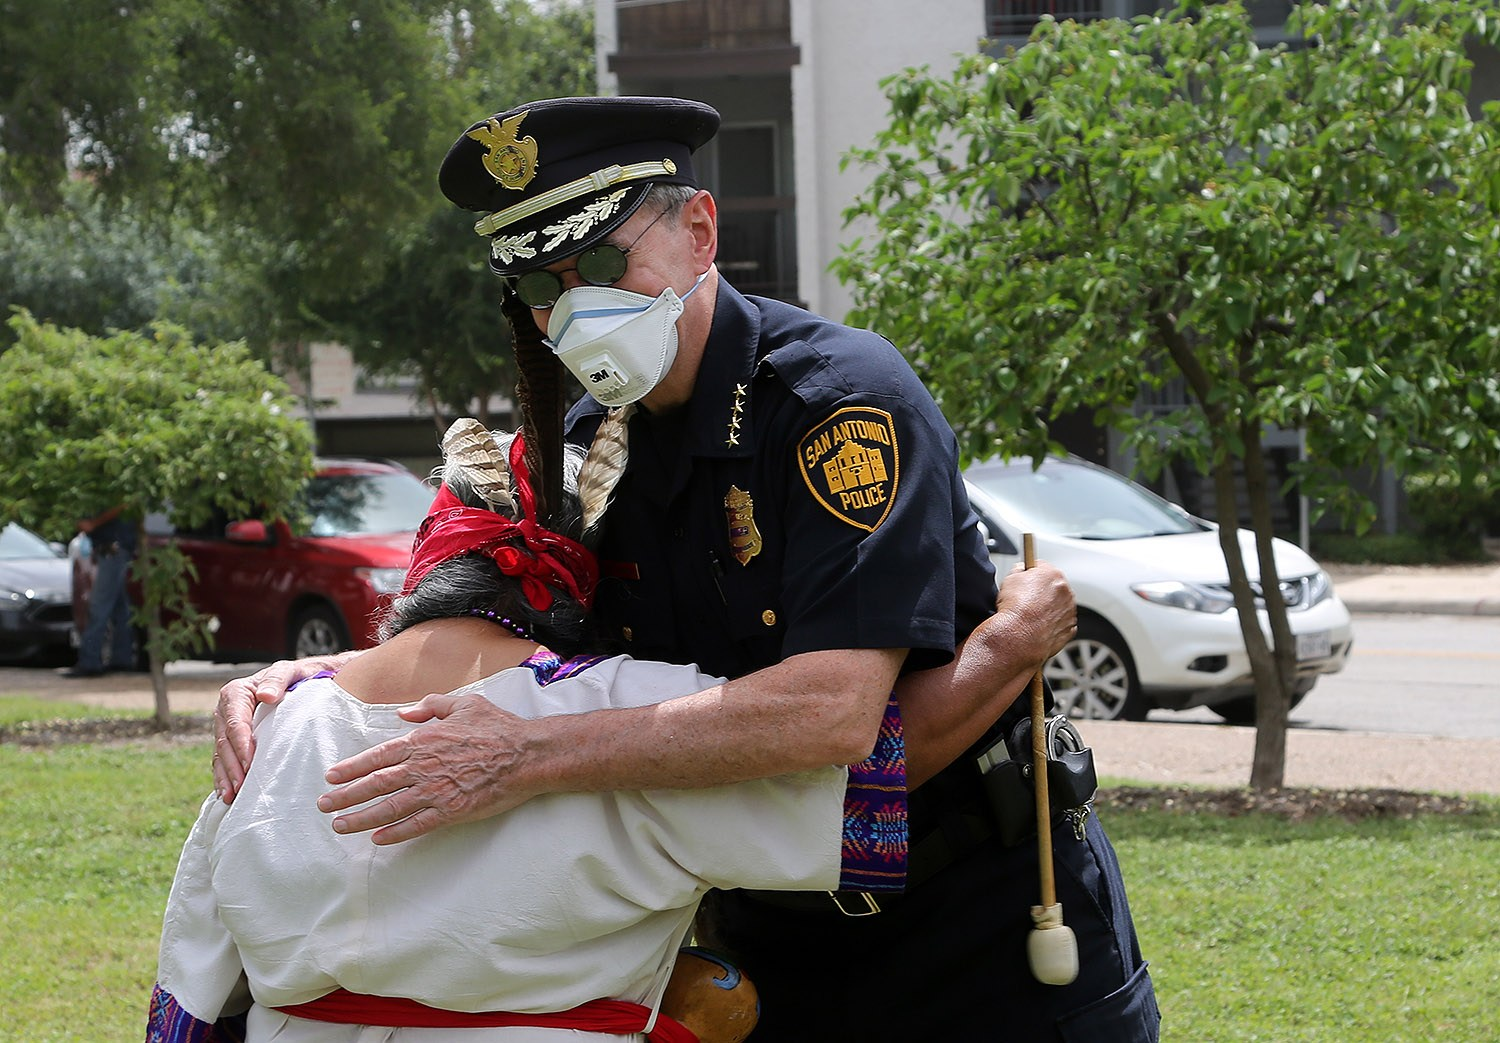 San Antonio Police Chief William McManus hugs Diana Uriegas before a protest for the removal of the Christopher Columbus statue Saturday, June 27, 2020, at Columbus Park, 200 Columbus St. Photo by Ben Olivo | Heron